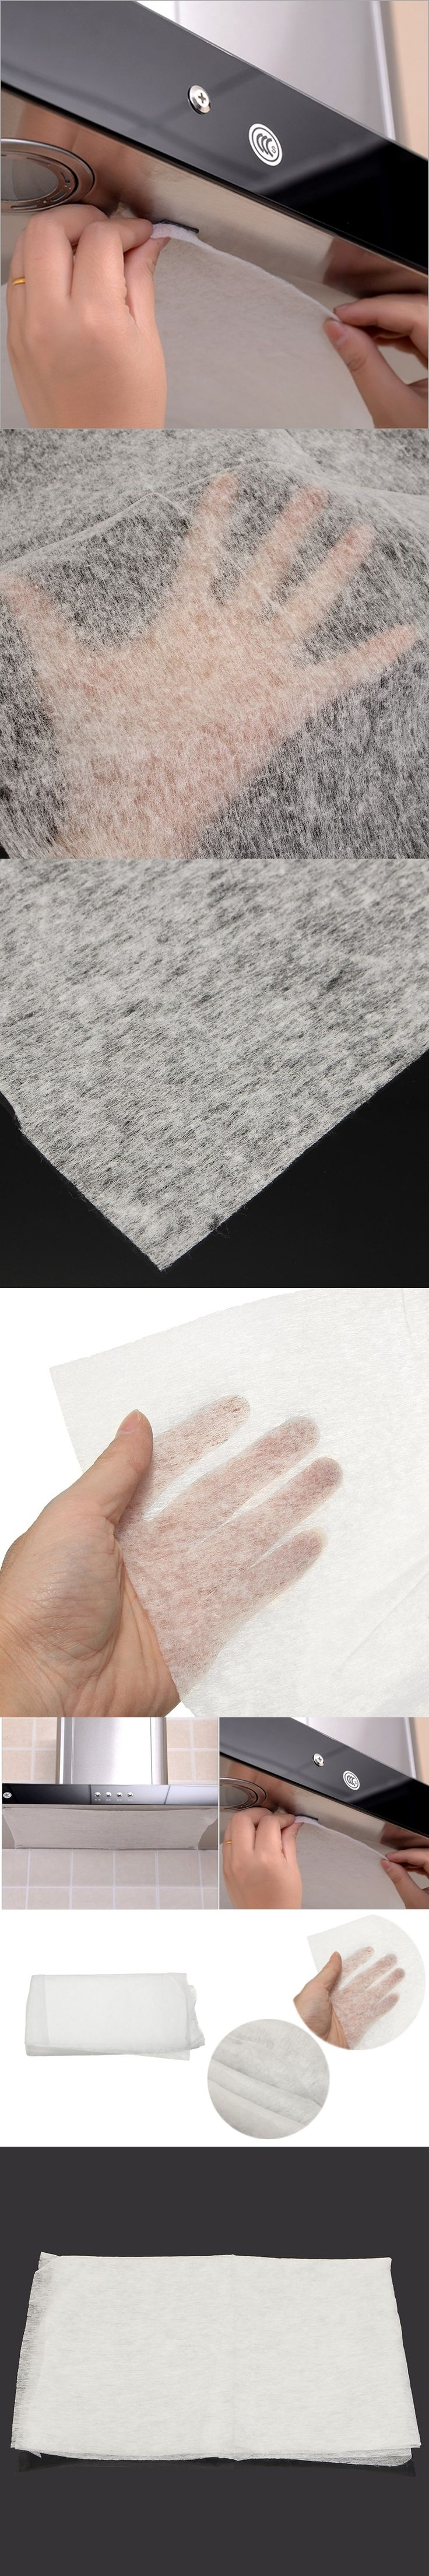 Universal 45x60cm Kitchen Absorbing Paper Non-woven Anti Oil Cotton Filters Cooker Hood Extractor Fan Filter Non-woven